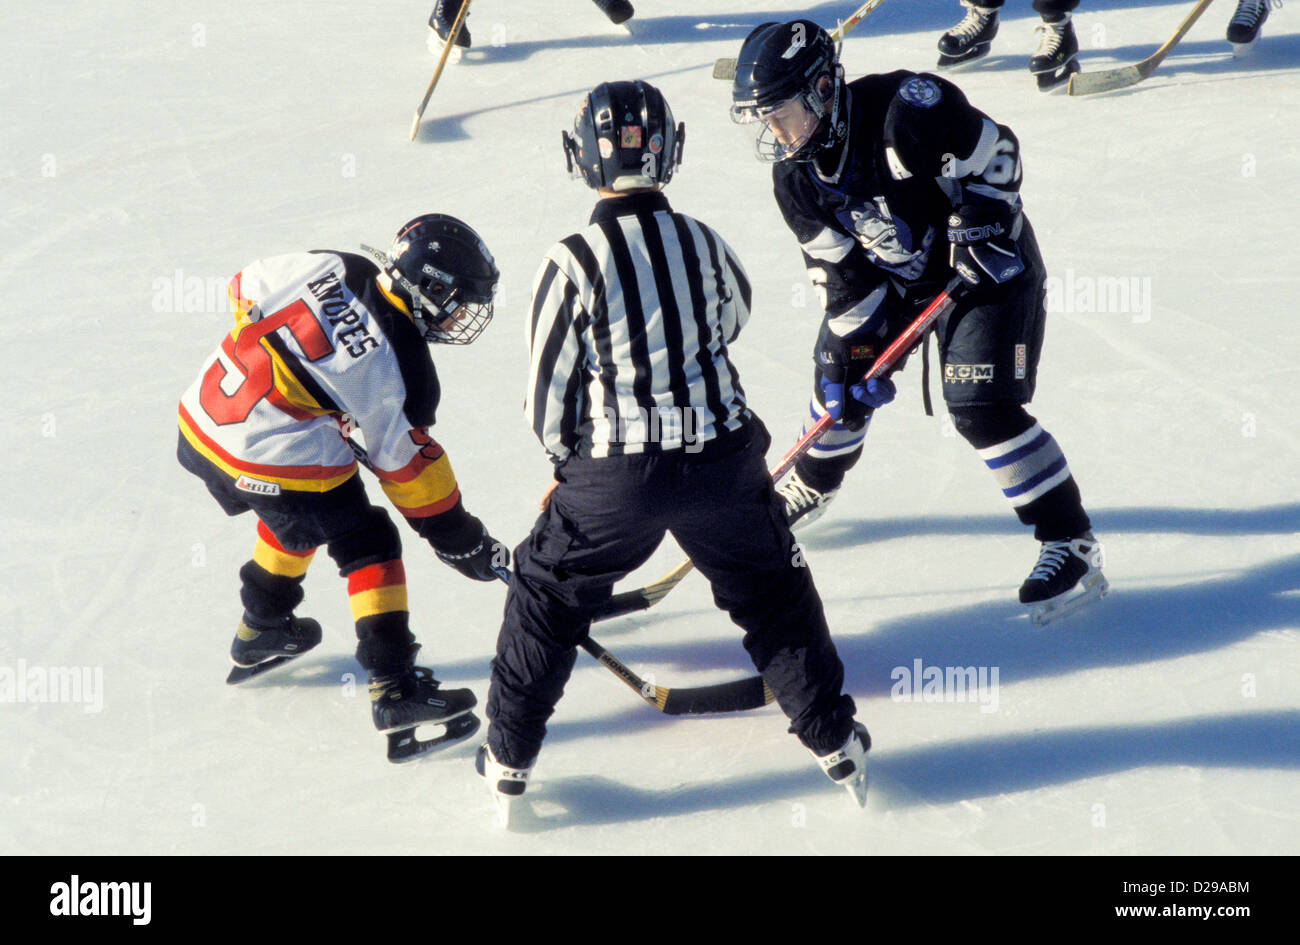 Youth Hockey Faceoff. - Stock Image